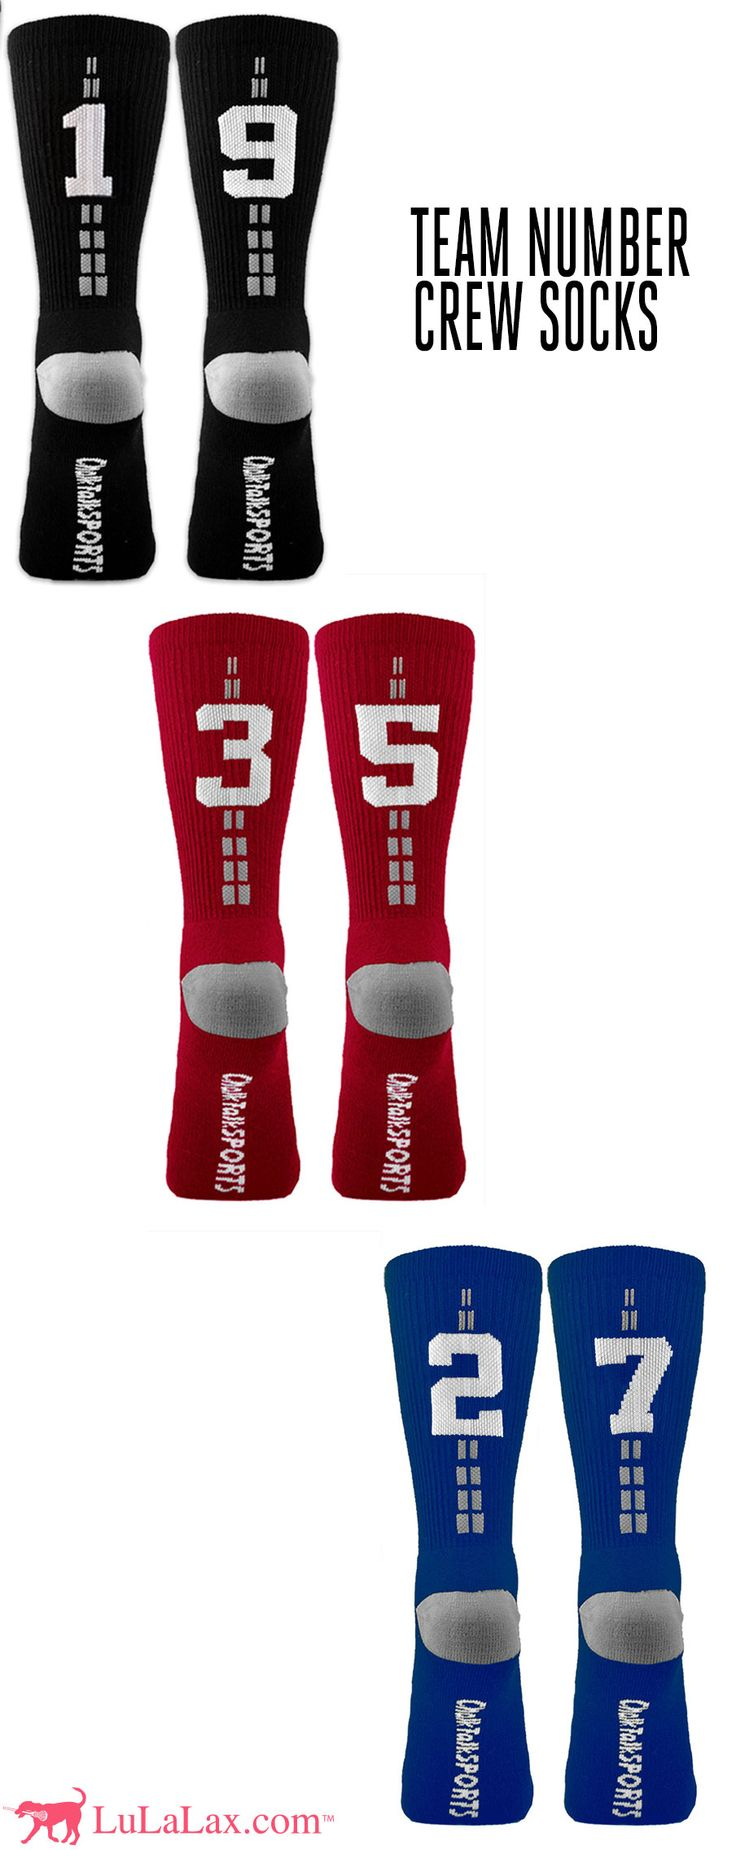 Our team number crew socks make a great team gift! Just choose your lacrosse number and color! We offer black, red, blue, green, pink, and safety neon yellow! Which will you choose? LuLaLax.com